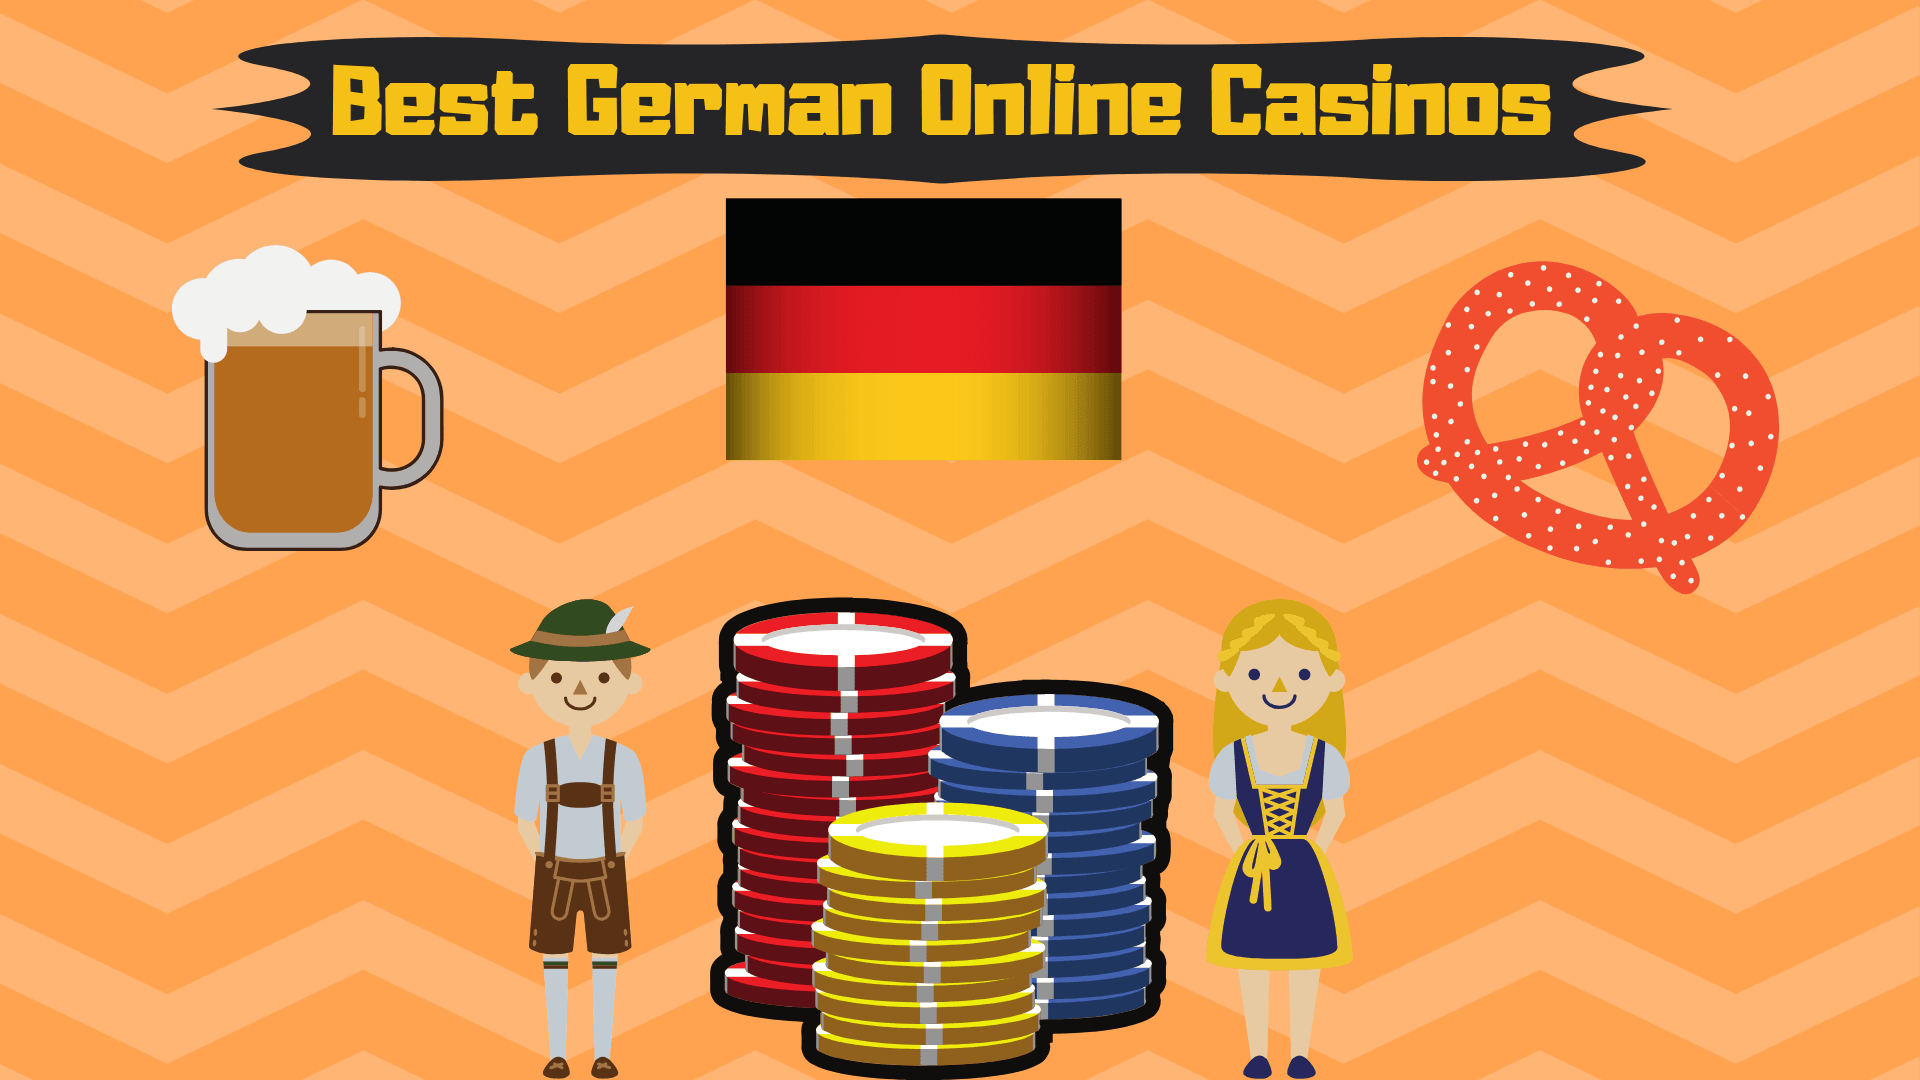 Best German Online Casinos